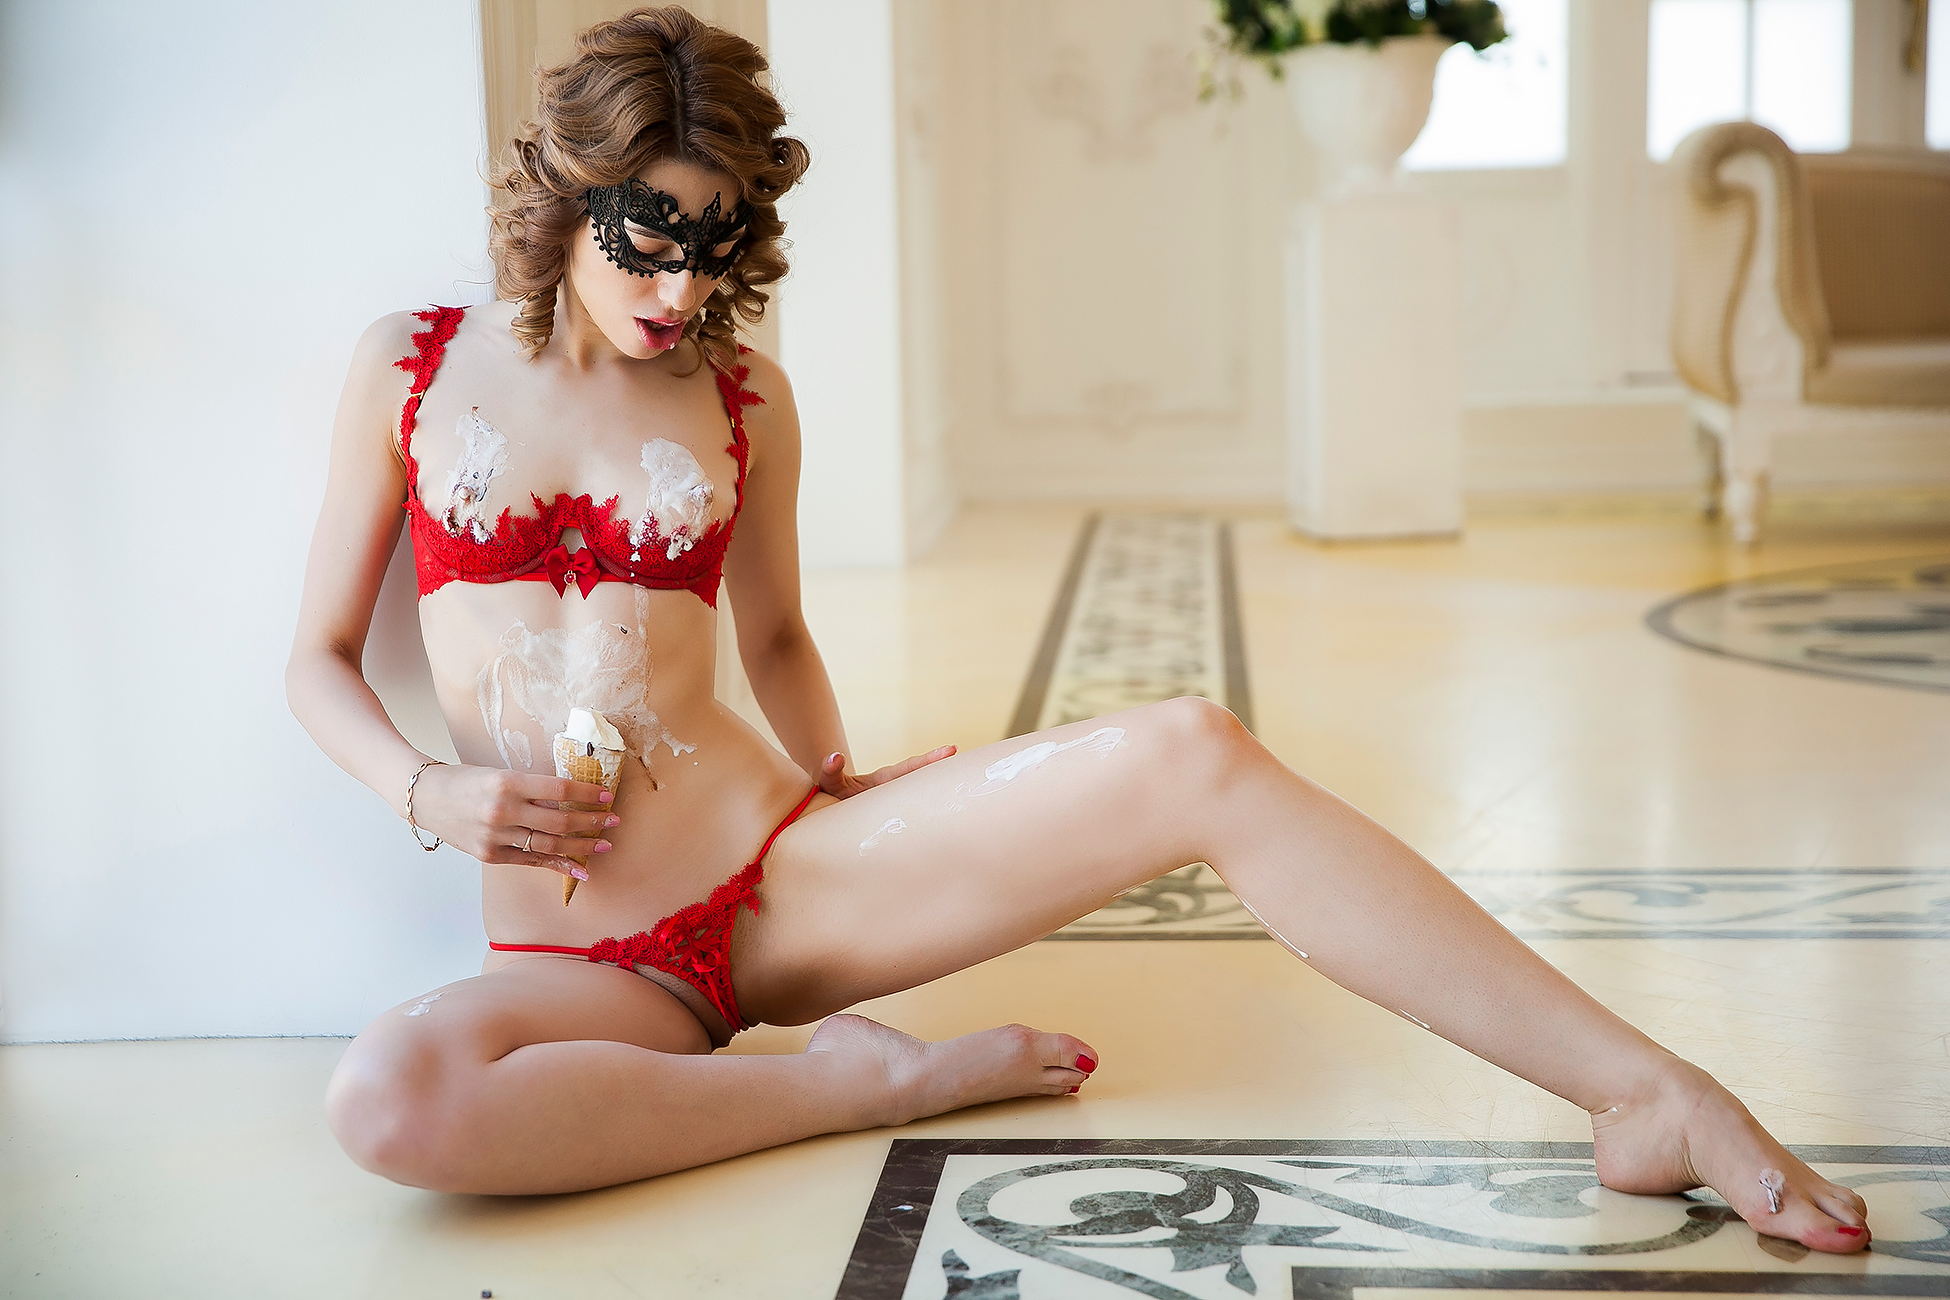 Avrora   - Avrora is a high class independent escort, lingerie and Playboy model.  She is intelligent, sensual and very friendly. Available in Brussels,  Luxembourg and Paris, but being an upscaled travel companion, Avrora is  also available worldwide by appointment.